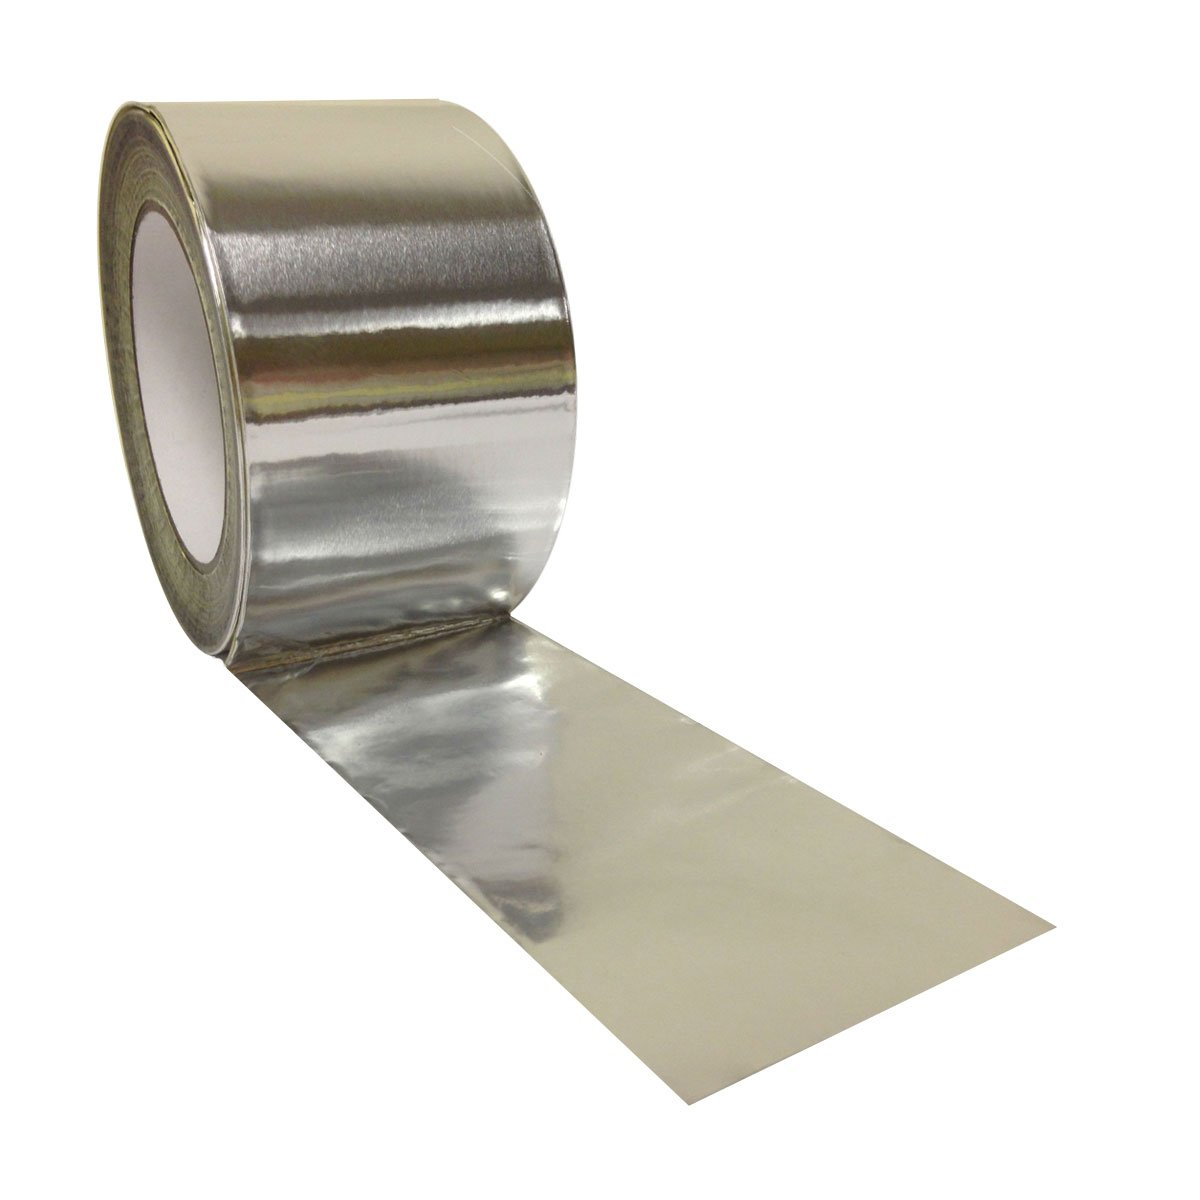 Aluminium Foil Tape 75mm x 50M Waterproof Repair Tape klebetape.de